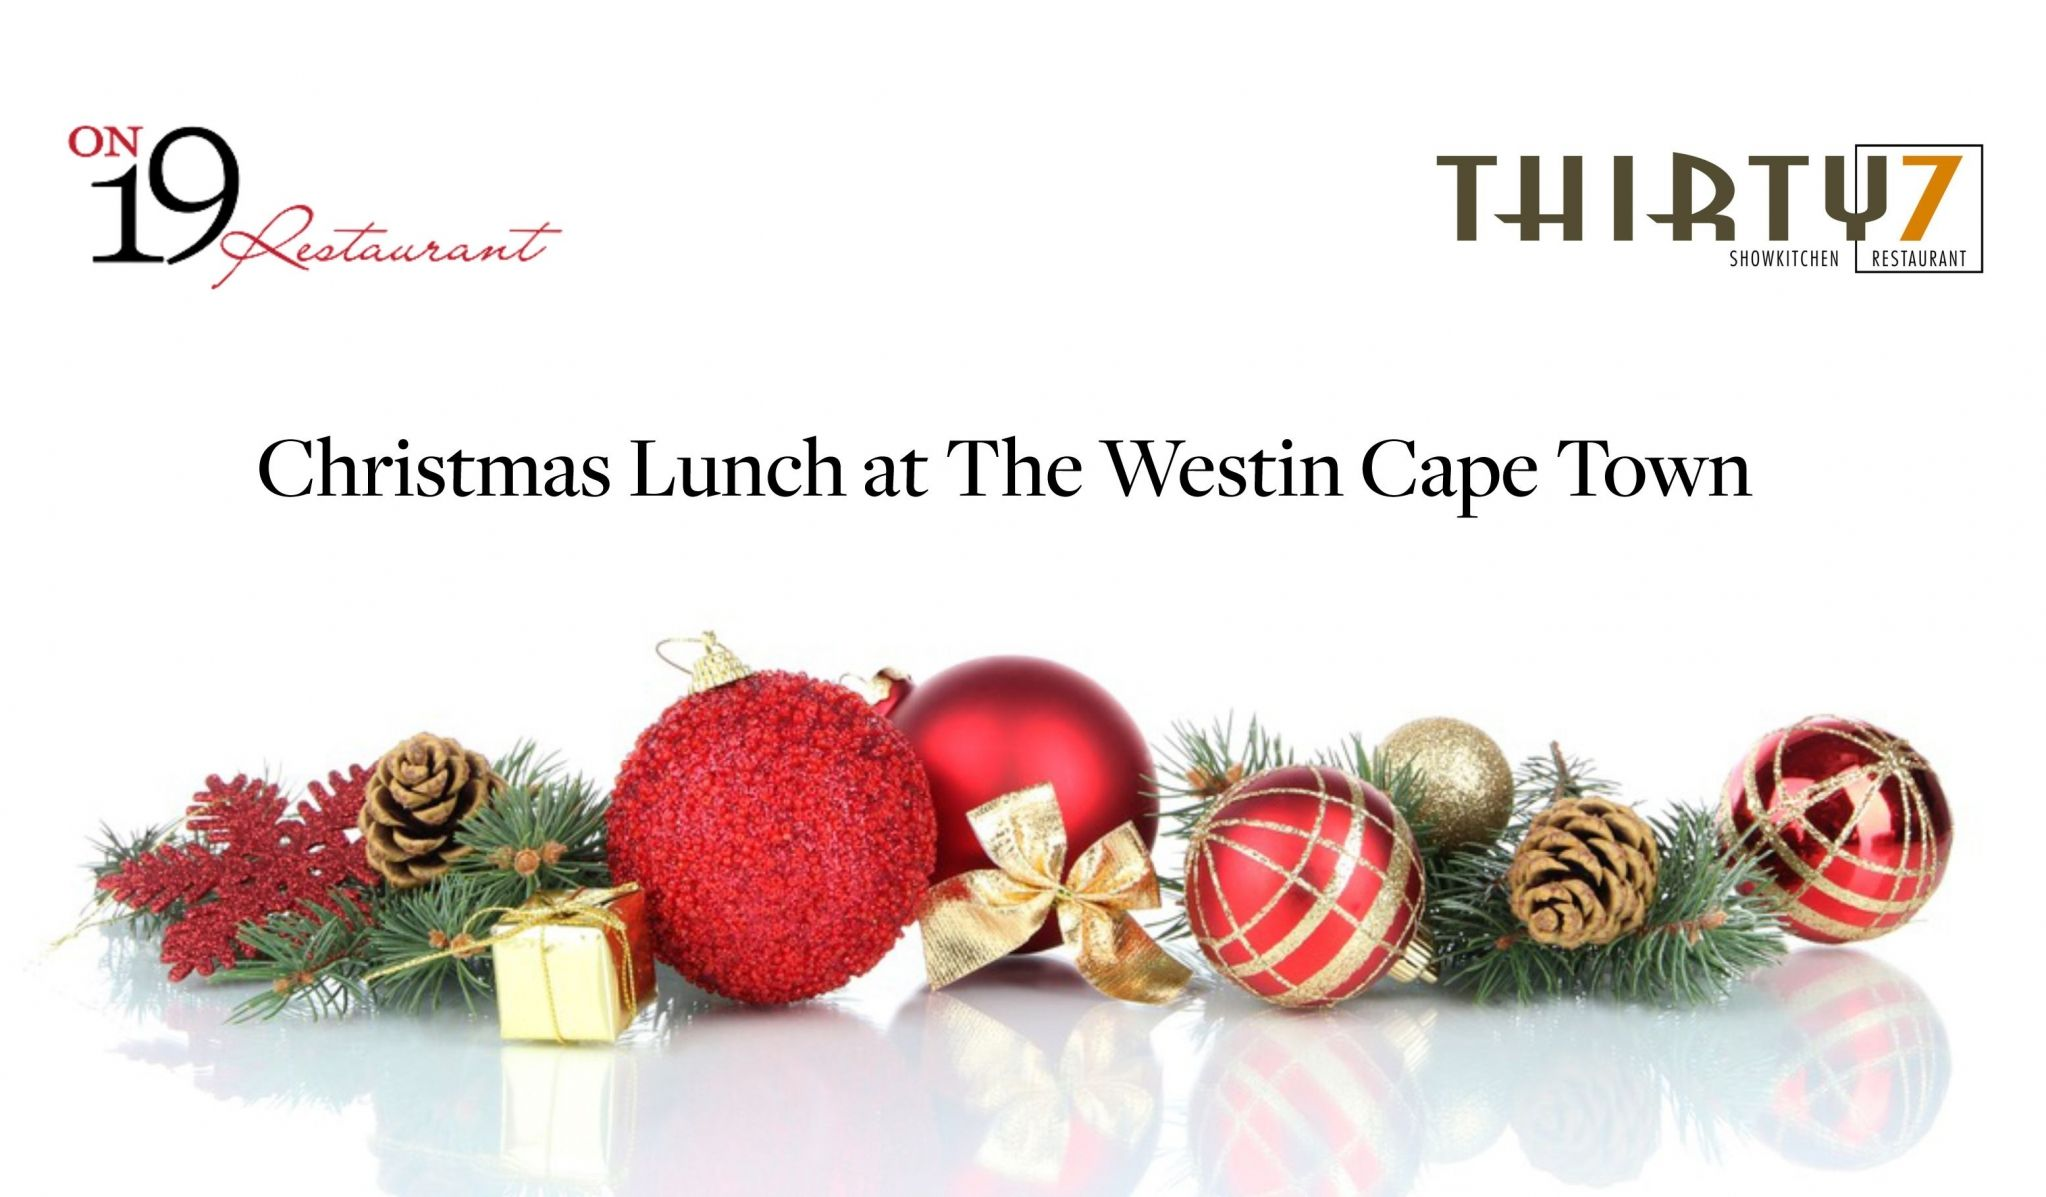 Westin Cape Town Christmas Lunch at The Westin Cape Town